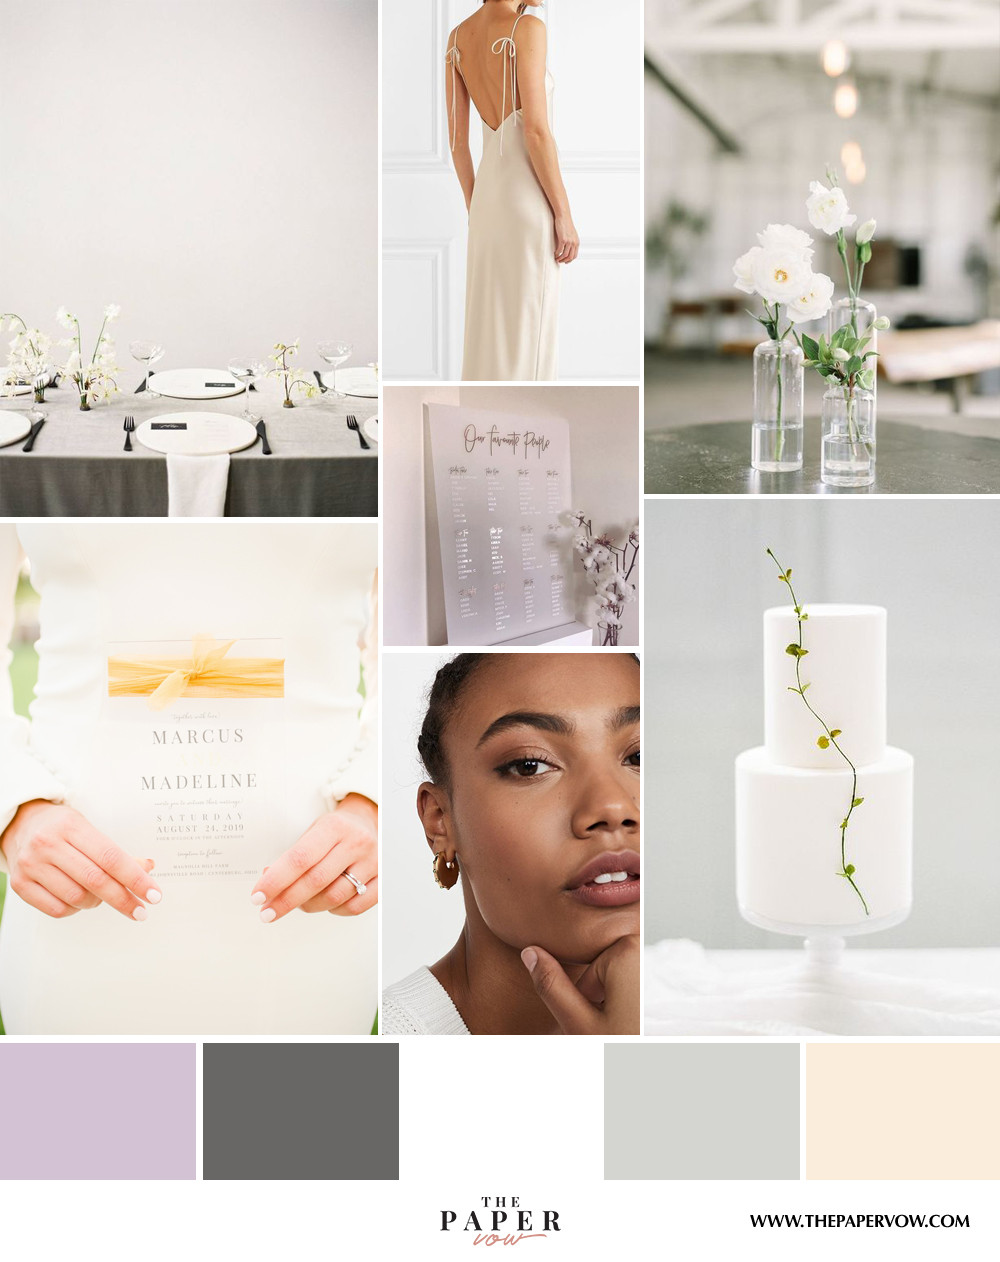 modern minimalist wedding inspiration with neutral colors and simple greenery